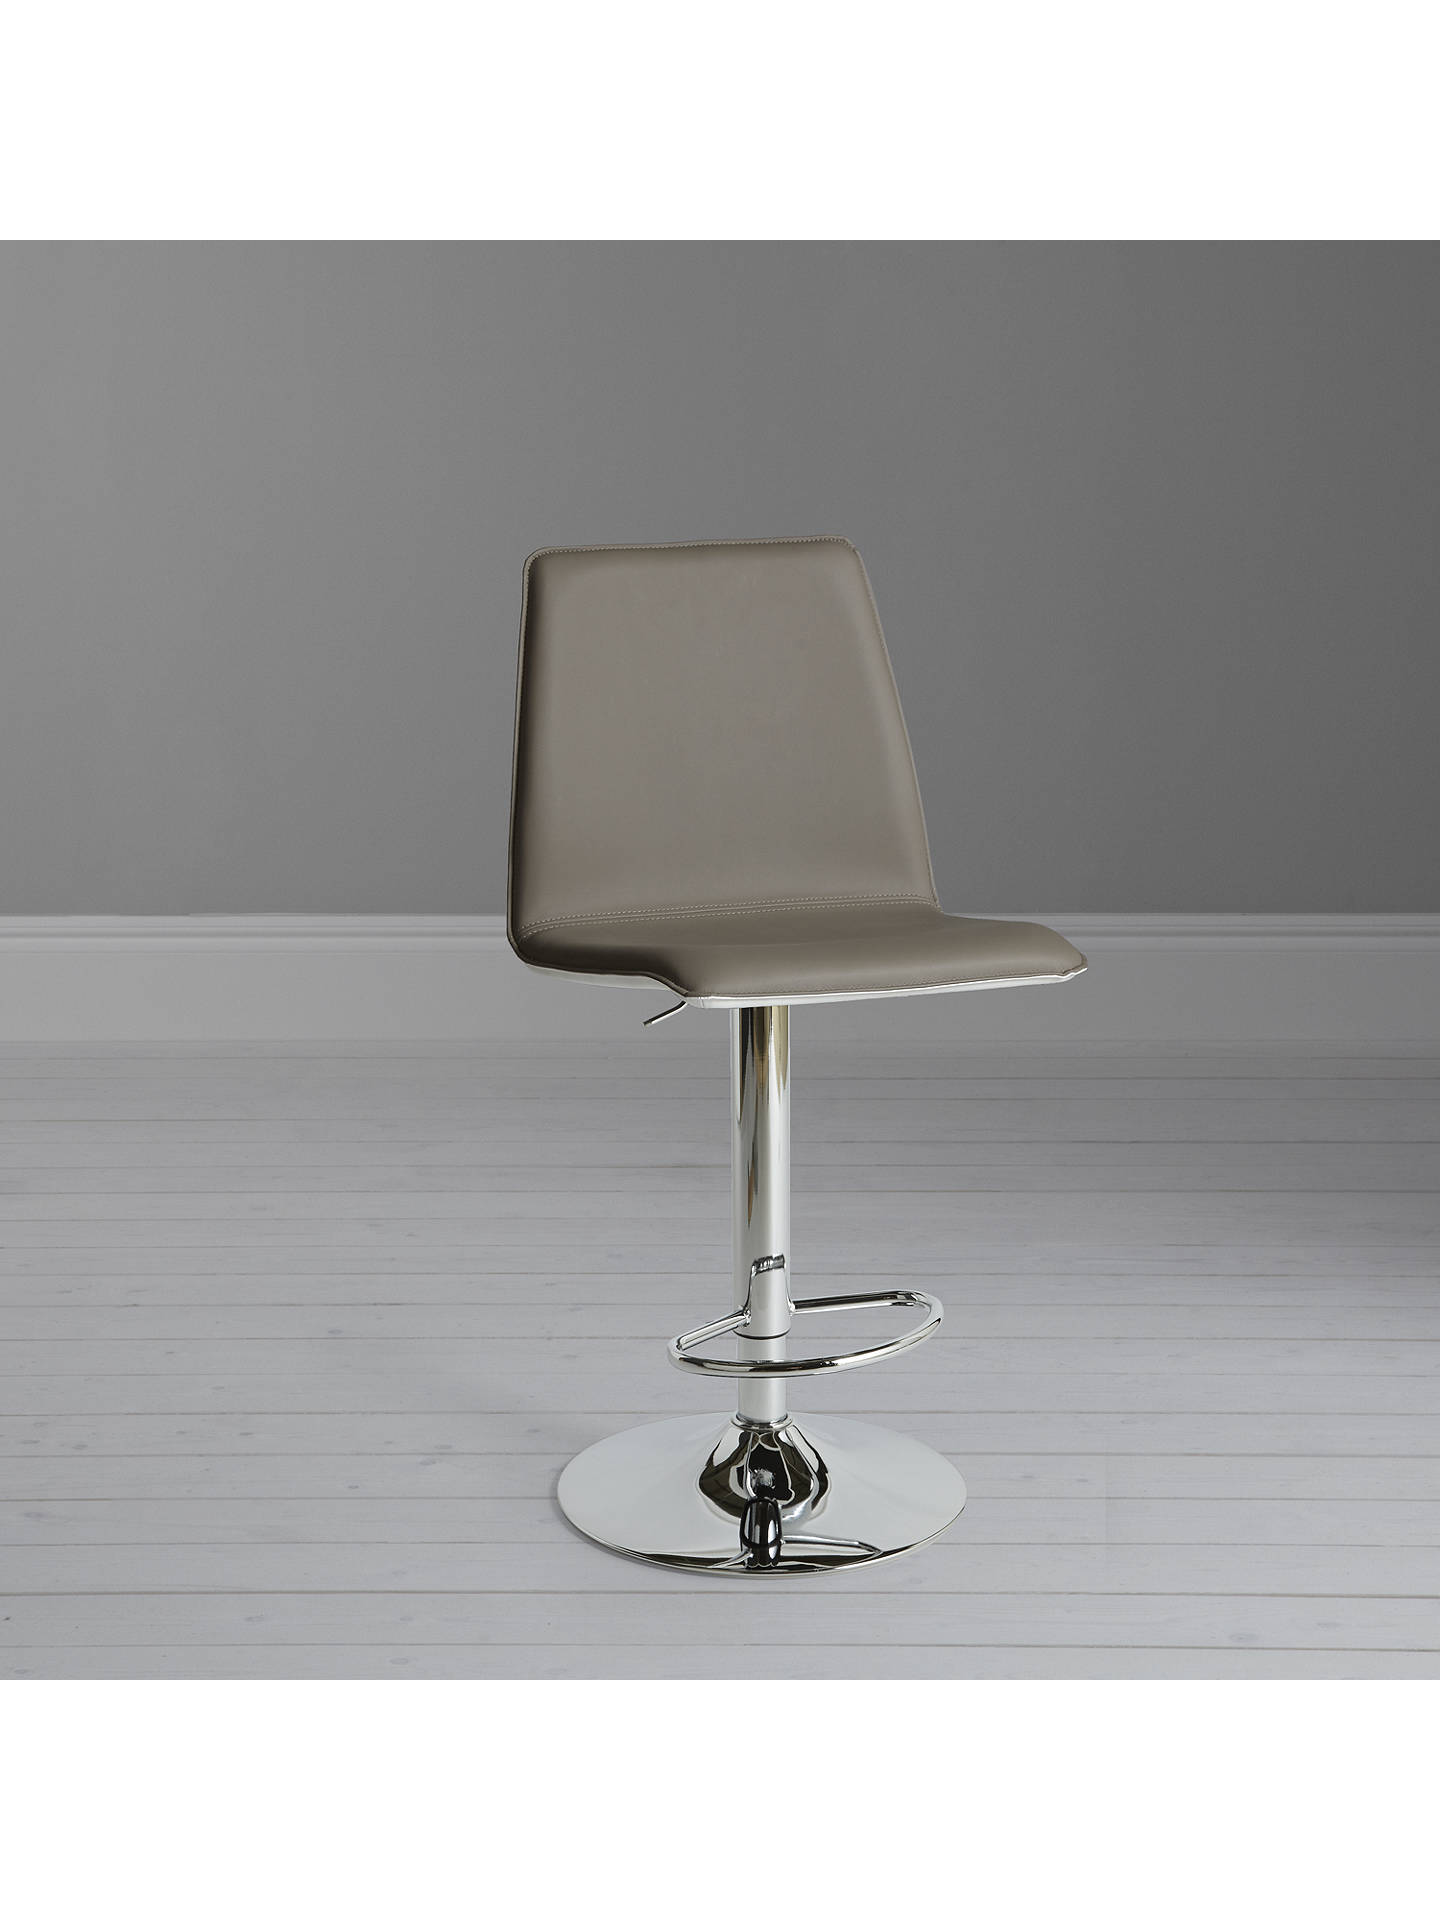 BuyJohn Lewis & Partners Xavier II Gas Lift Bar Chair, Taupe/Cream Online at johnlewis.com